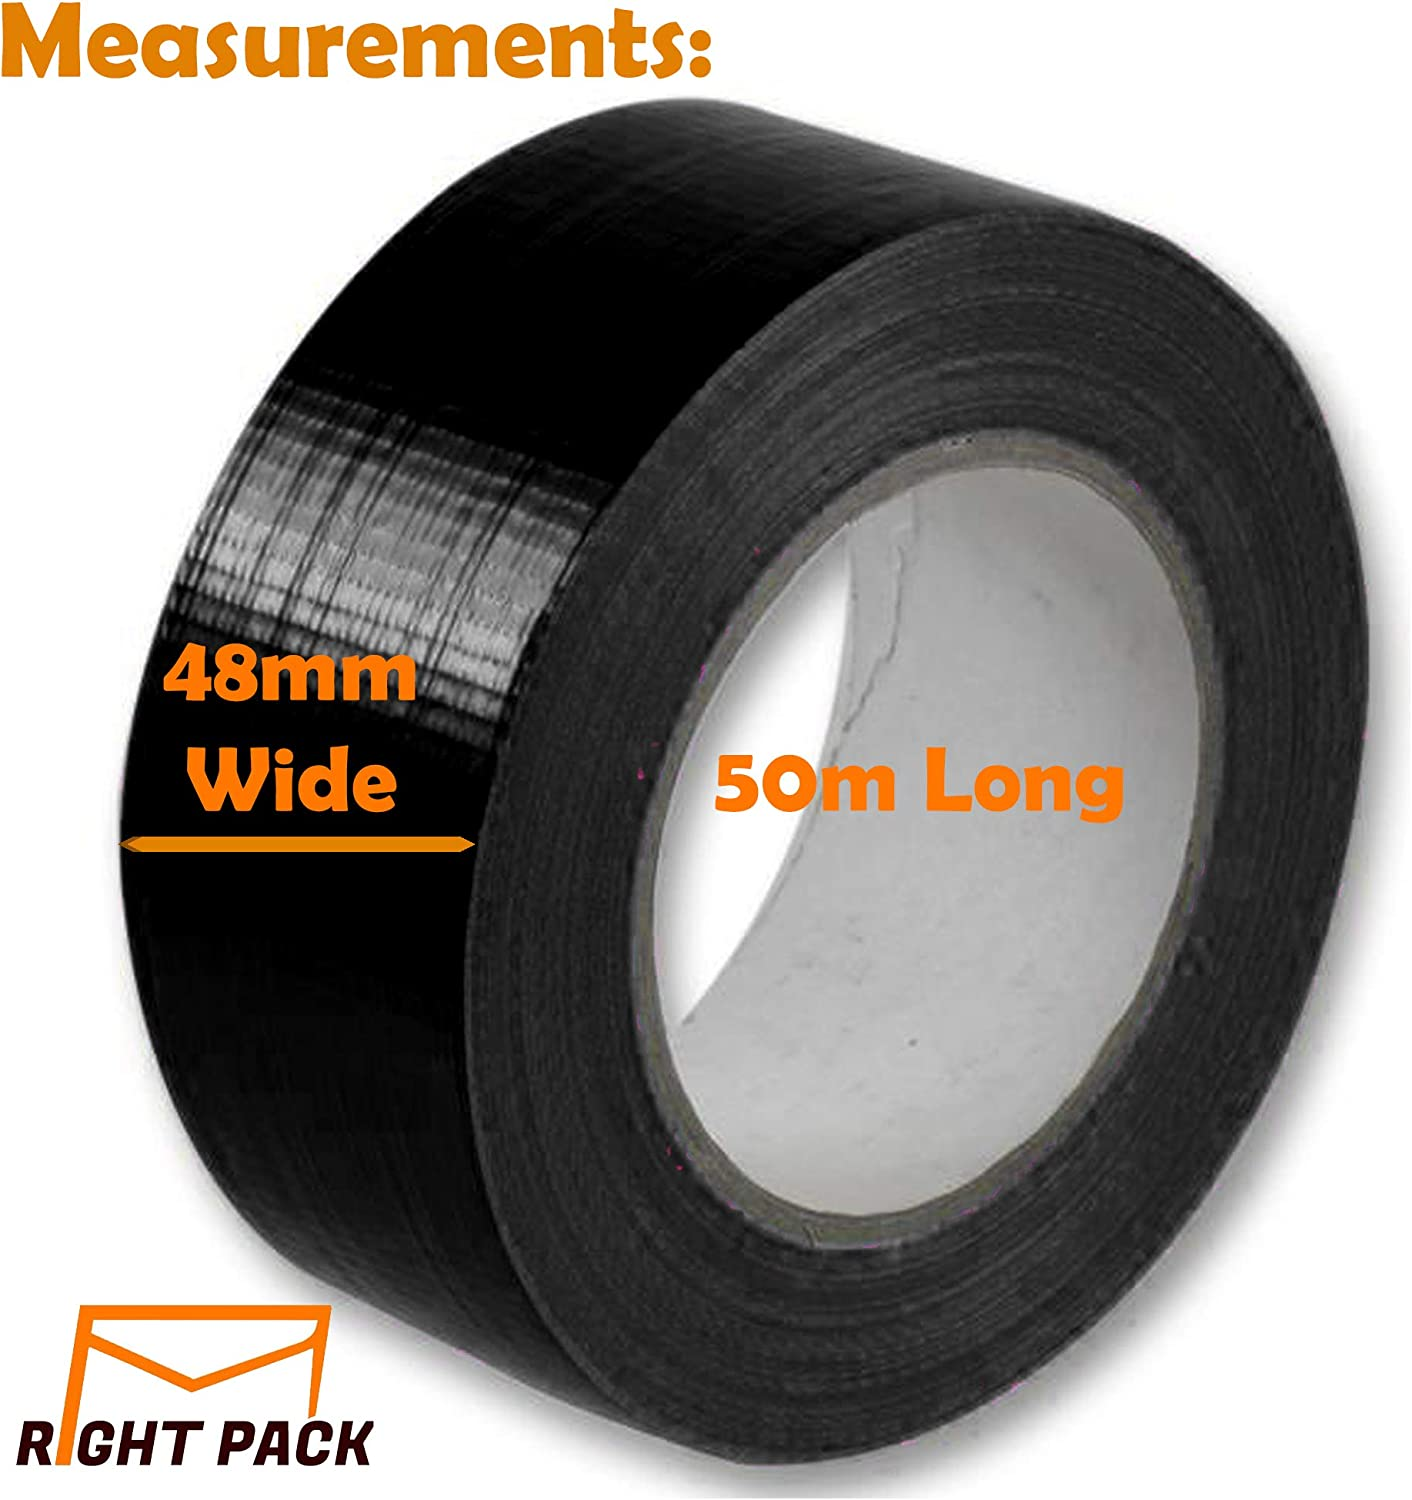 """Right Pack 1 x Premium Roll Black Duct Tape 48mm x 50m 2/"""" Strong Heavy Duty Waterproof Cloth Gaffer Gaffa Book Binding Indoor Outdoor"""